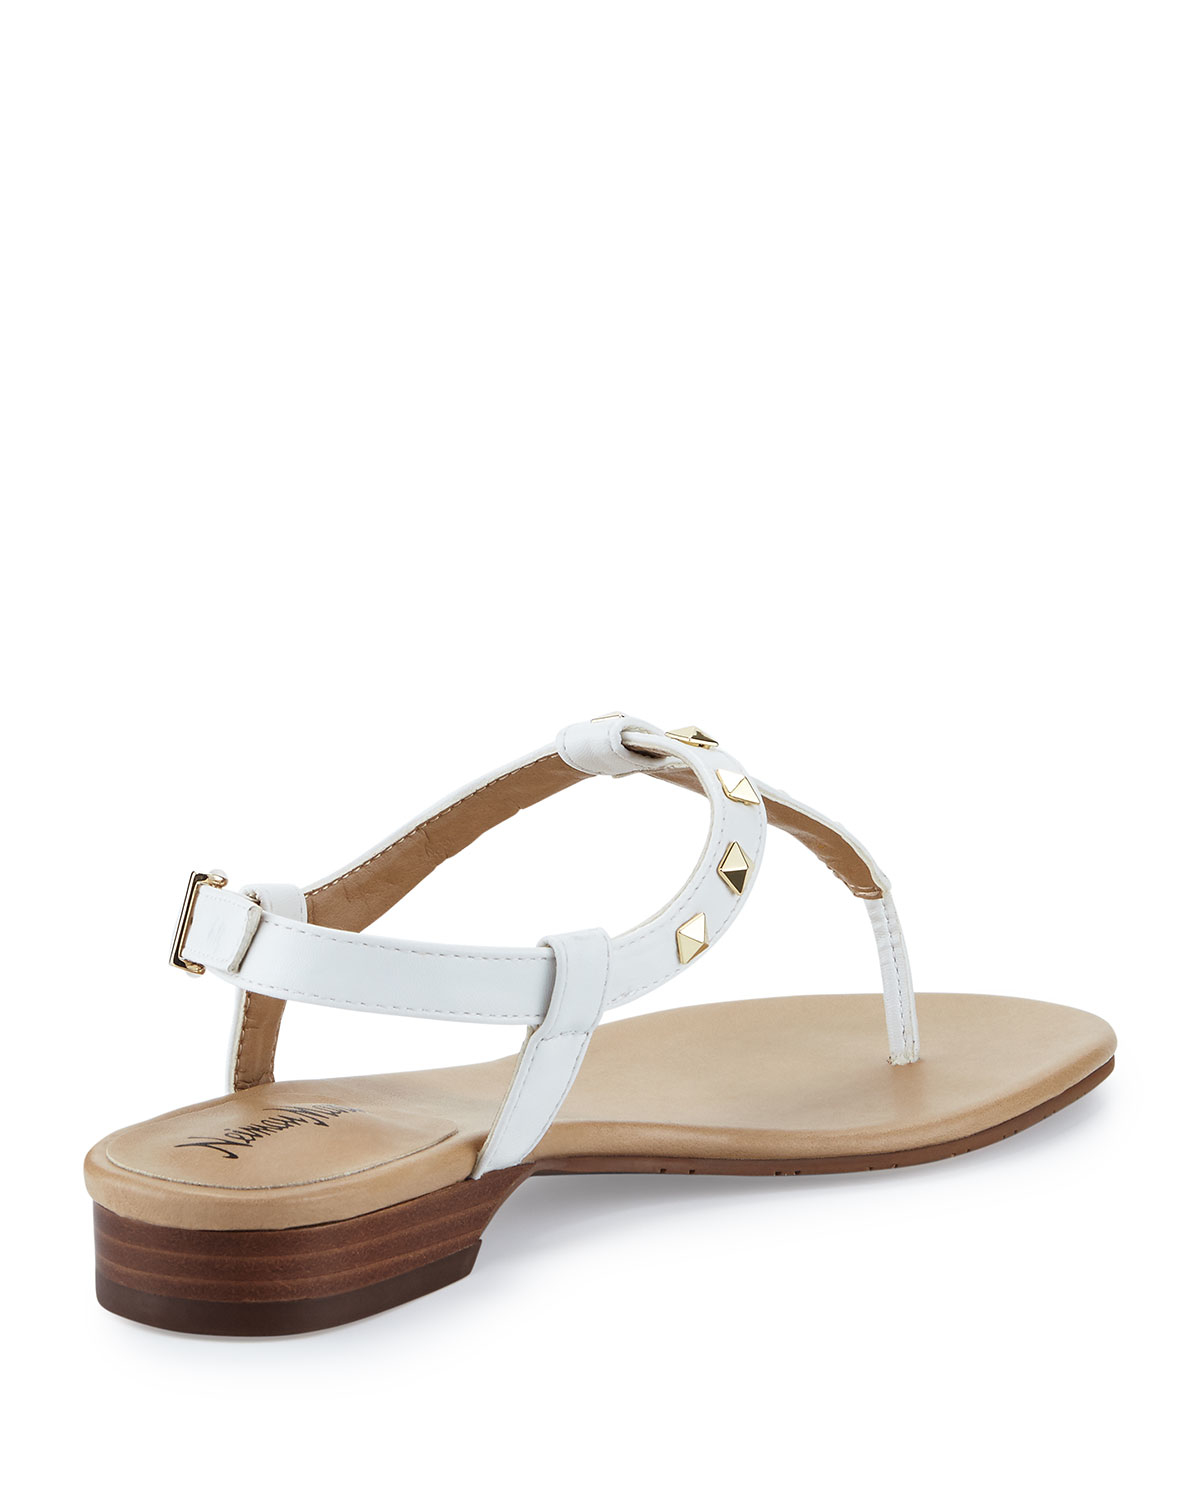 Neiman marcus Breana Studded Leather T-strap Sandal in ...